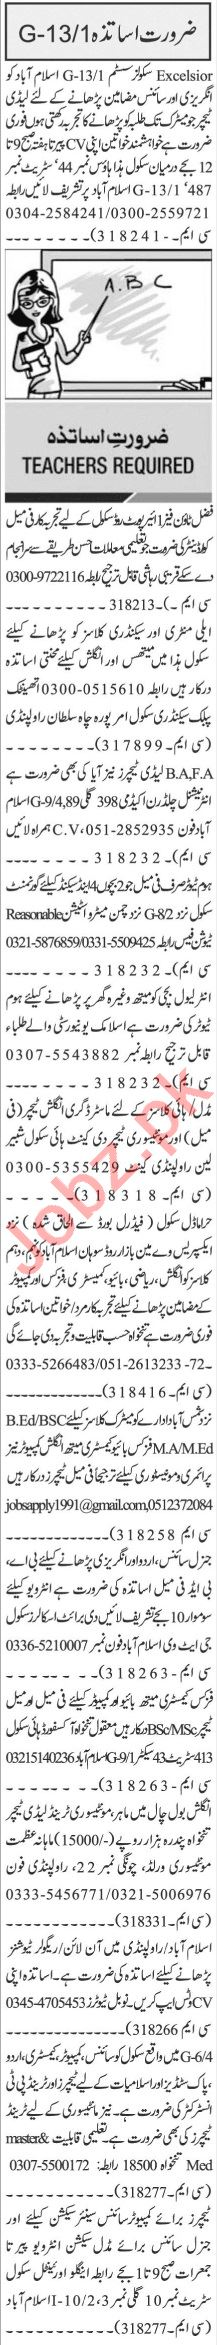 Jang Sunday Classified Ads 20 Sept 2020 for Teaching Staff